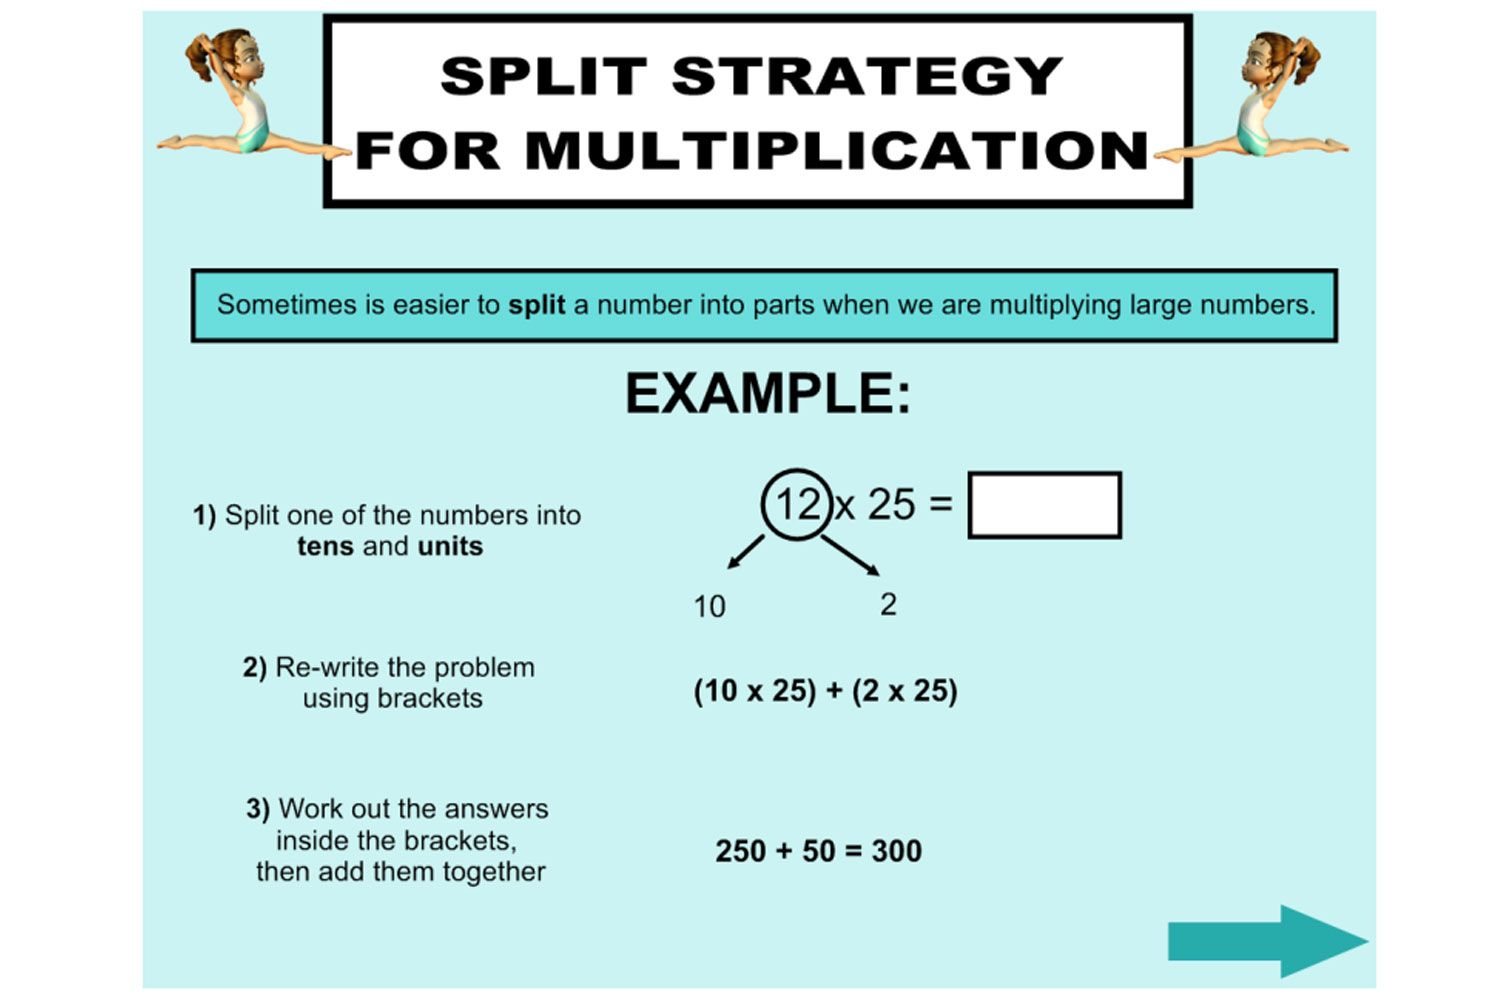 Teach Your Students How To Use The Split Strategy For